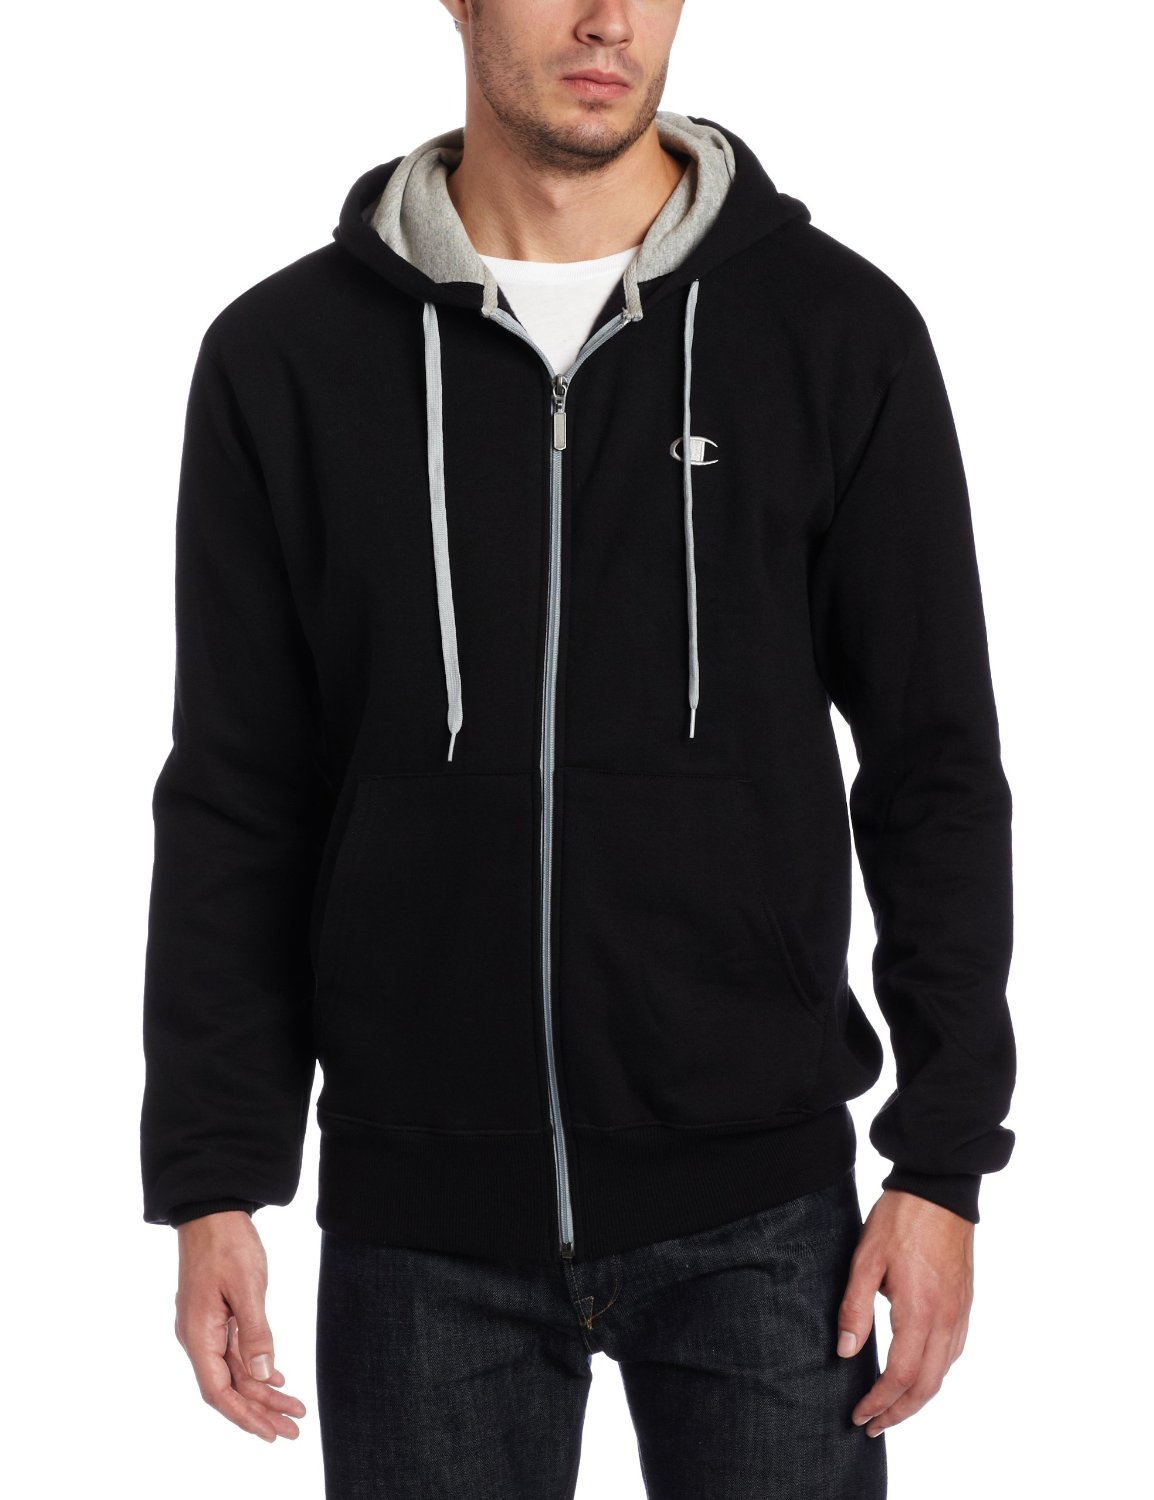 Our men's hoodies are designed to keep you warm and comfortable in any weather. Shop our hooded sweatshirt options in heavyweight or midweight cottons or merino wool. Our zip sweatshirts are perfect for running errands or wearing to work.